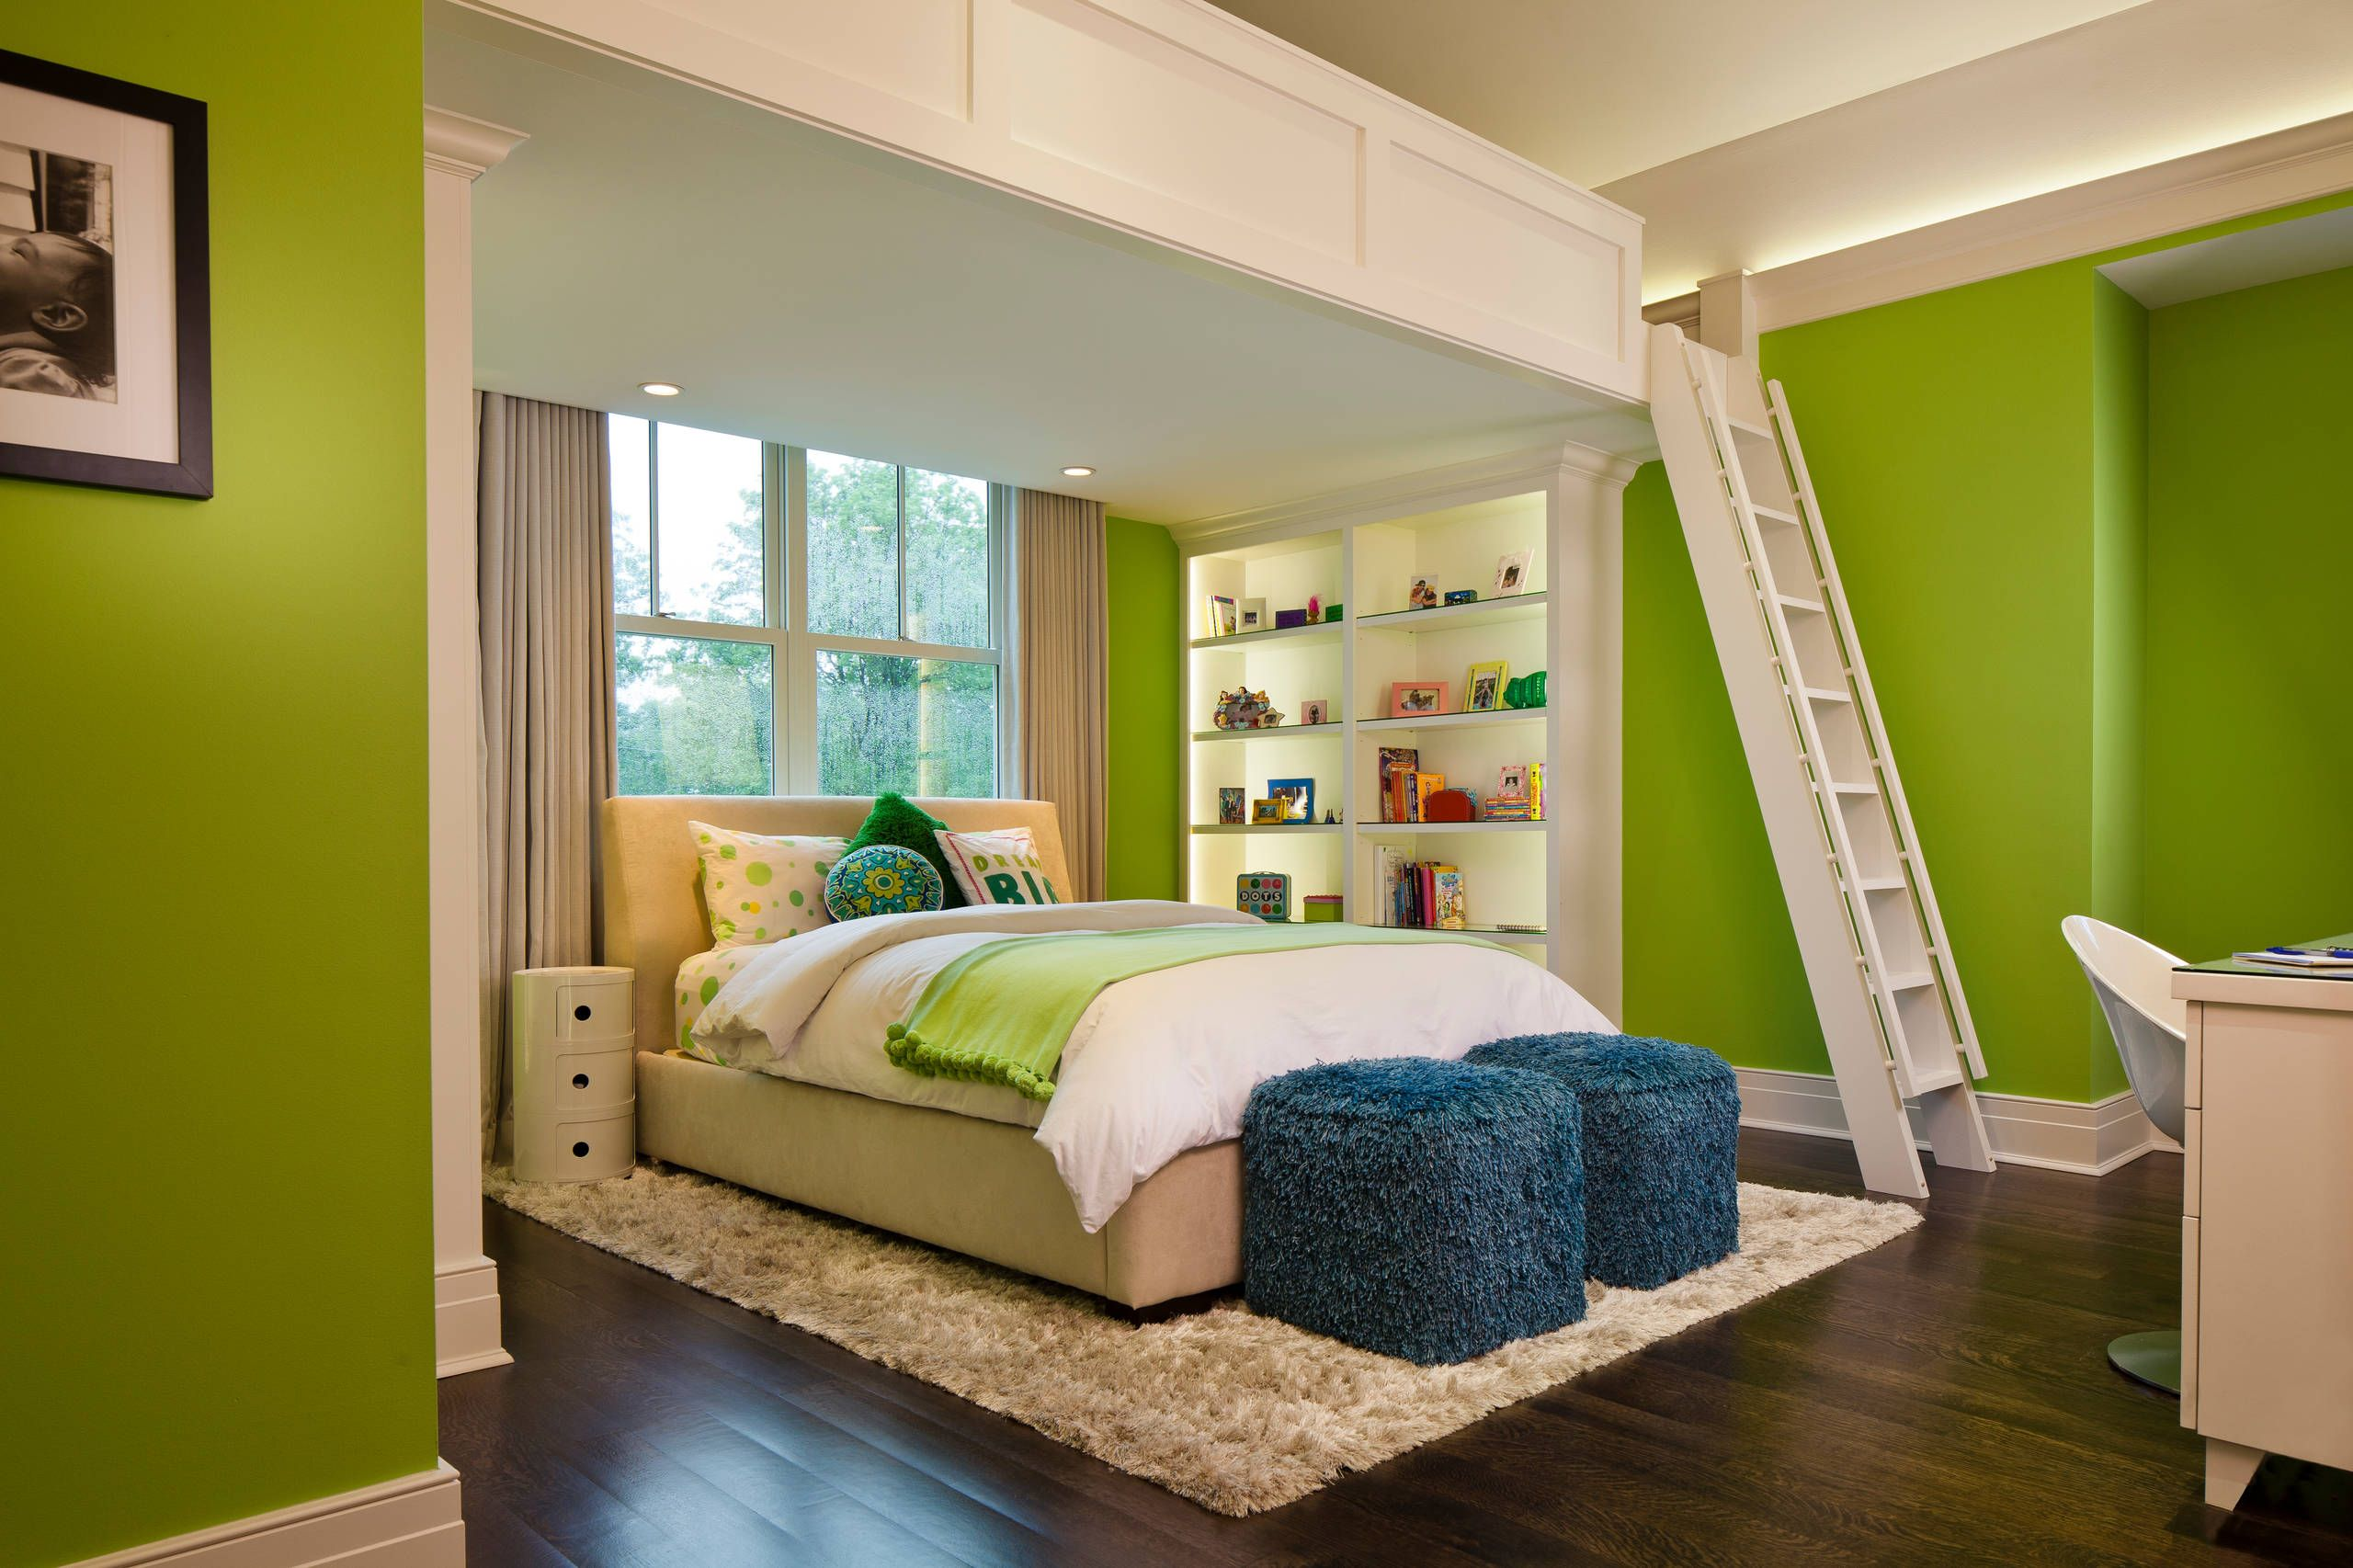 Fantastic Loft Beds For Teenagers As Teenagers Favorite: Lime Green Wall  Color With Shag Rug